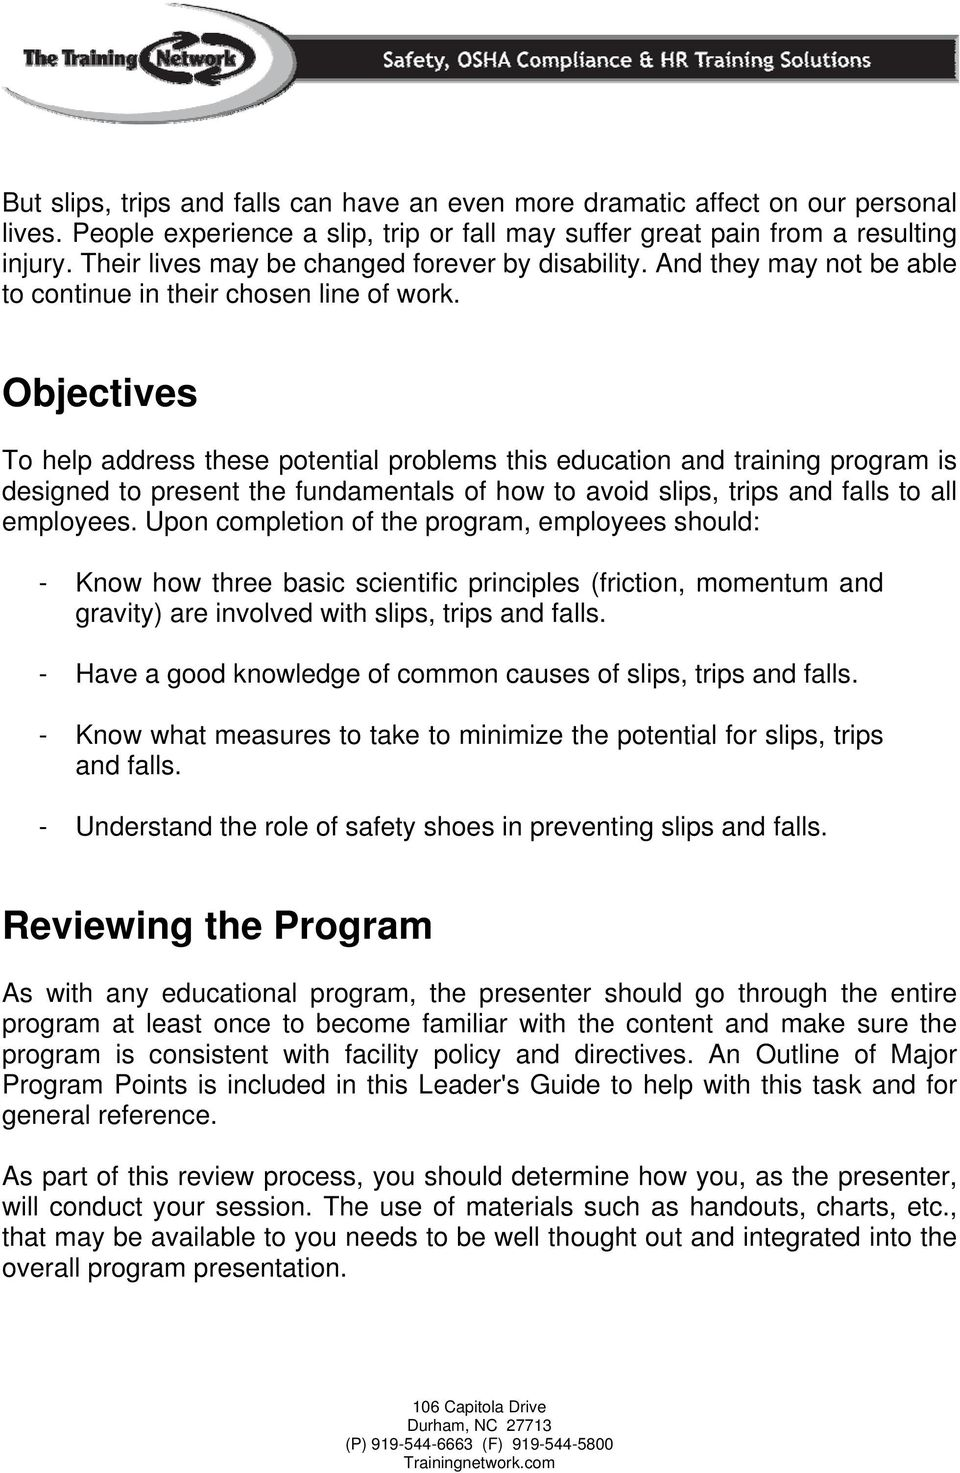 Objectives To help address these potential problems this education and training program is designed to present the fundamentals of how to avoid slips, trips and falls to all employees.